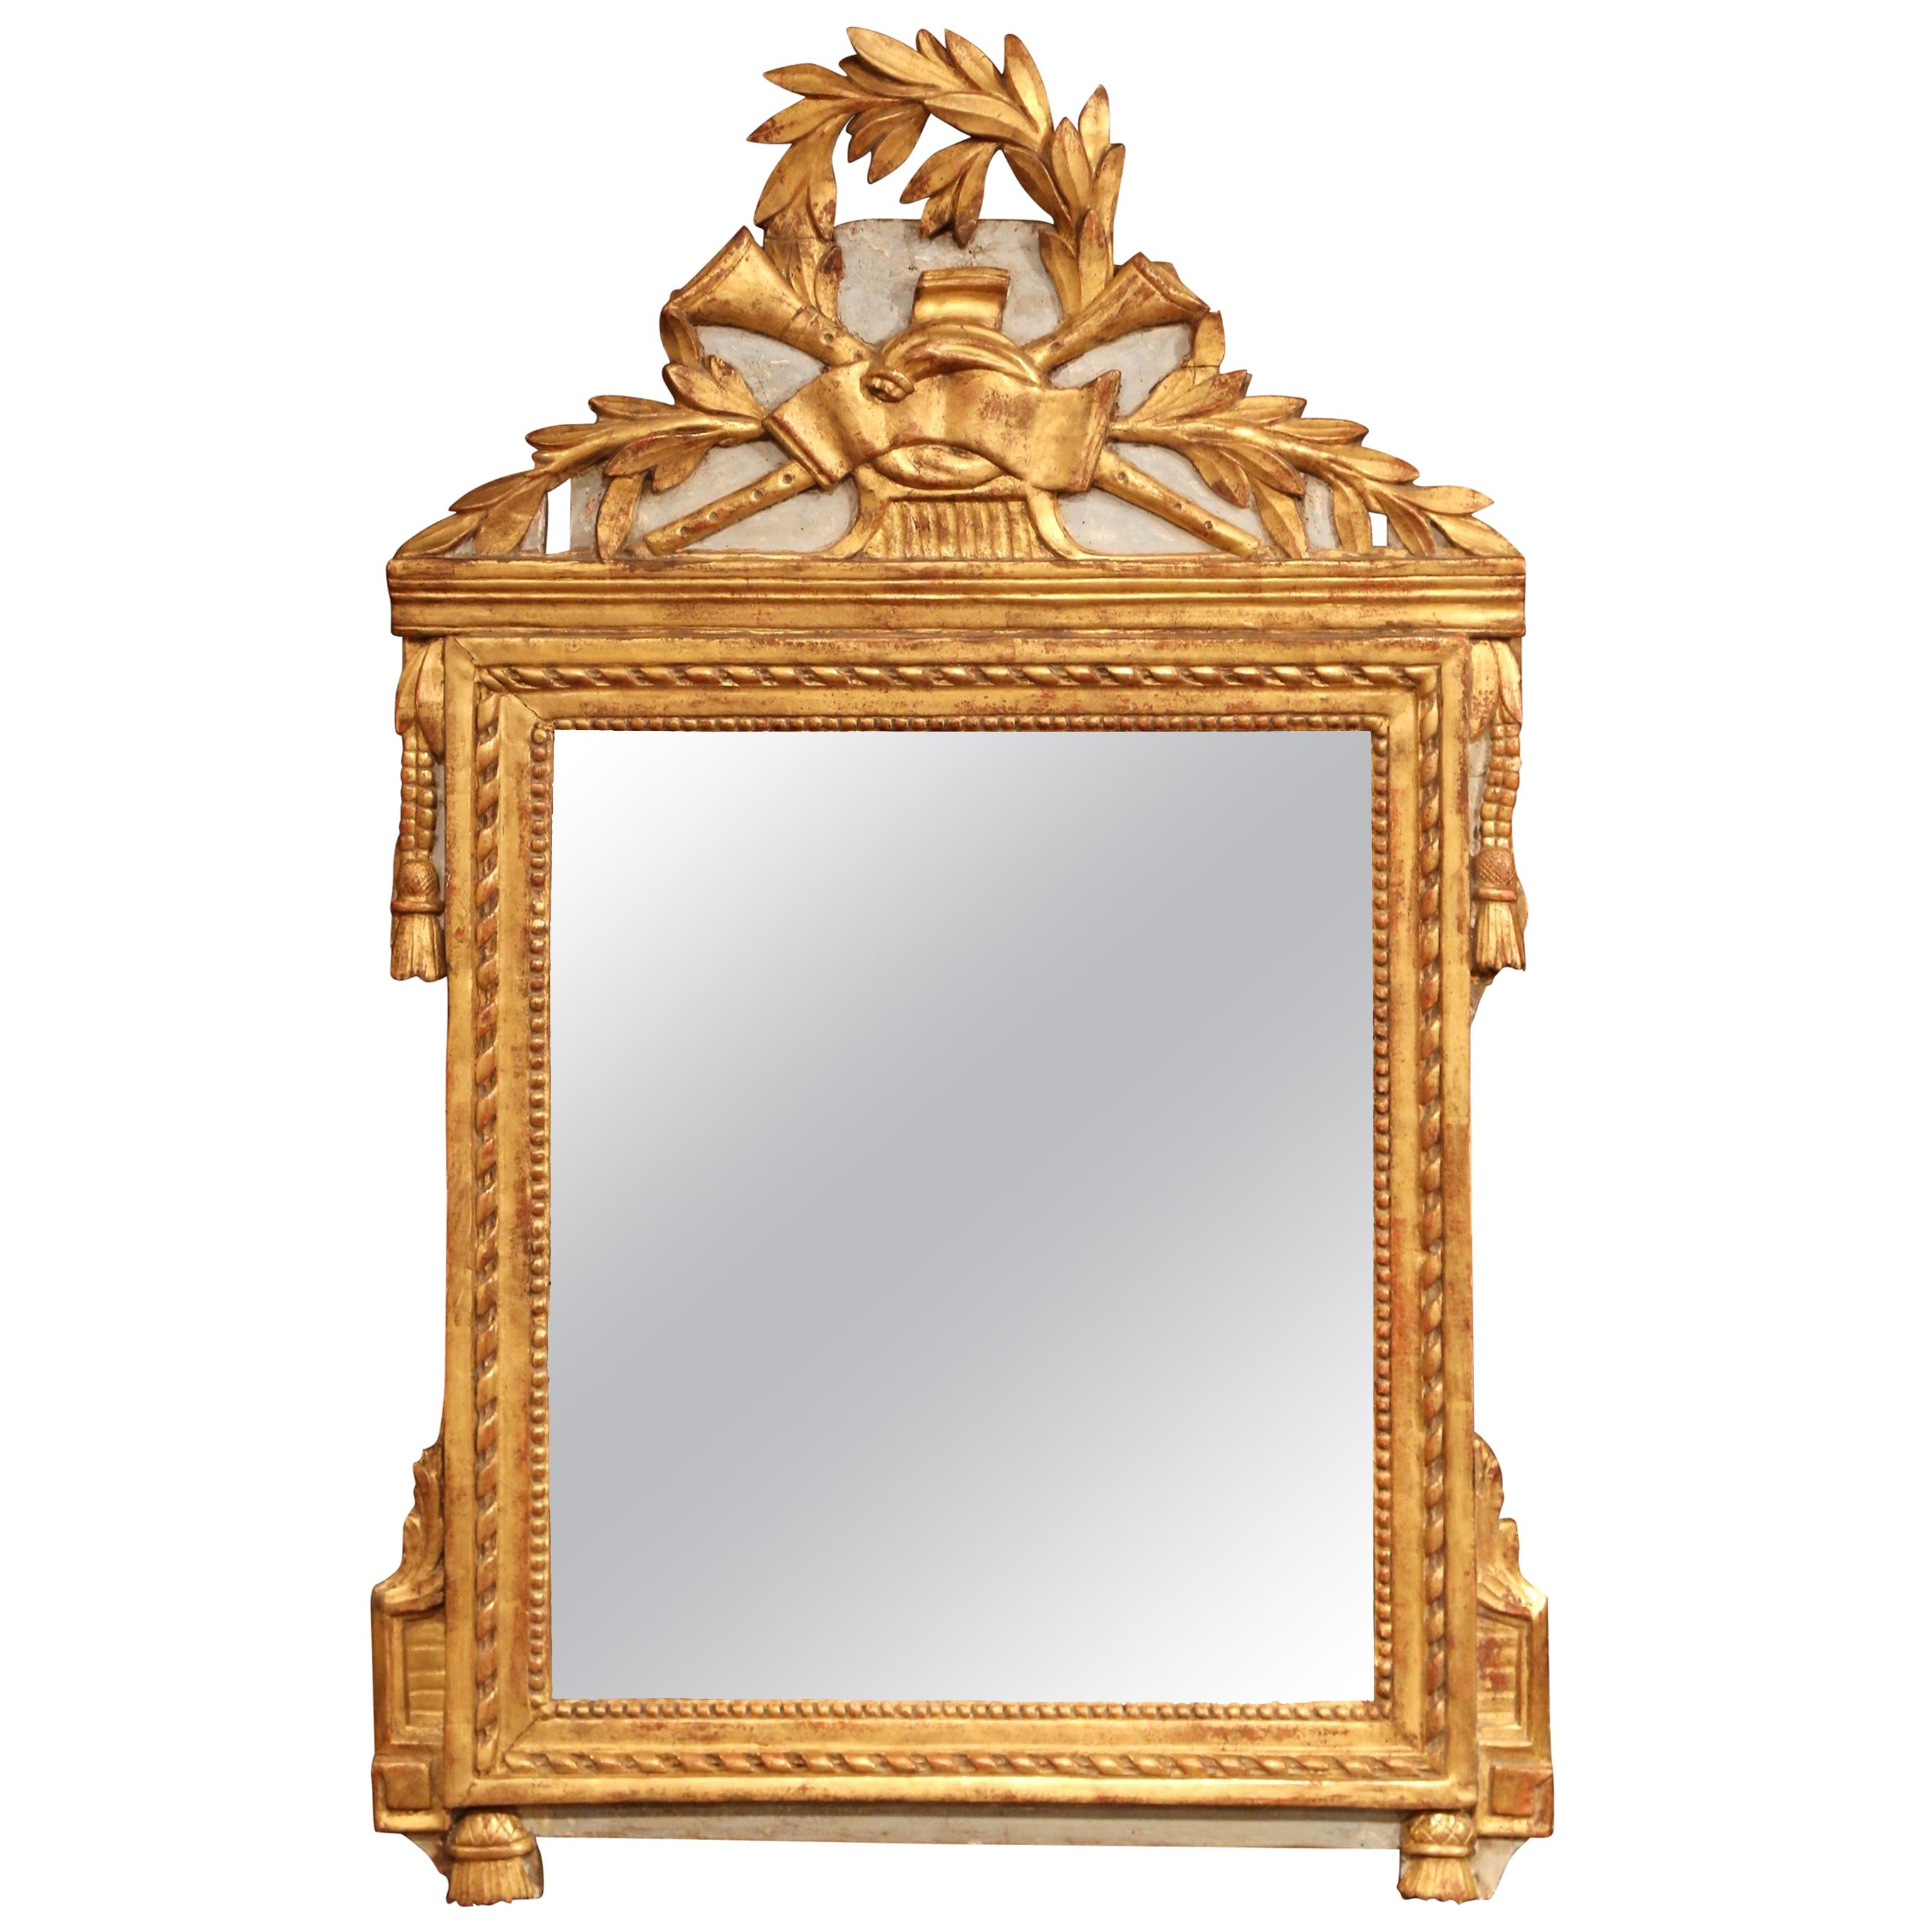 18th Century French Louis XVI Carved Giltwood Wall Mirror from Provence